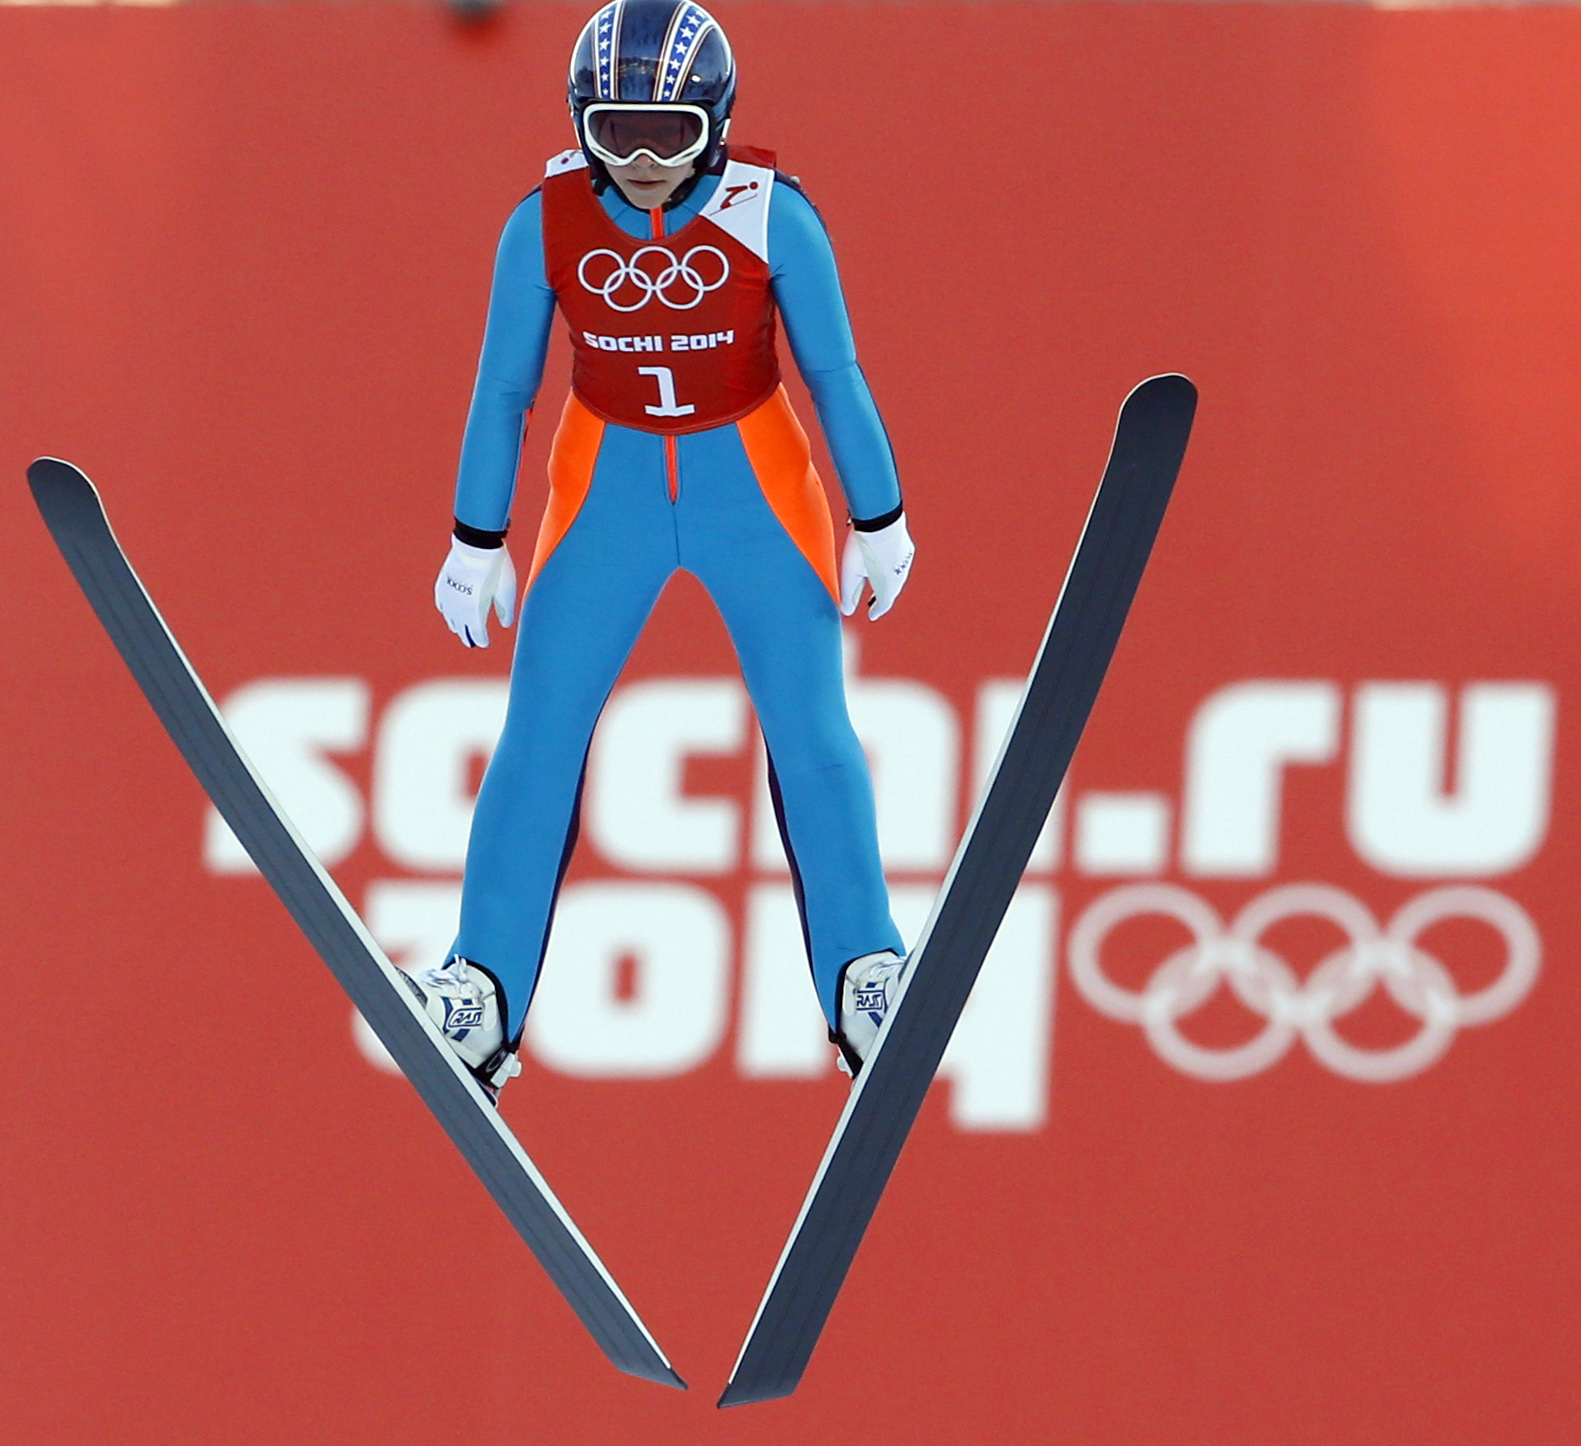 Sarah Hendrickson of the United States soars through the air during a women's ski jumping training session at the 2014 Winter Olympics, Saturday, Feb. 8, 2014, in Krasnaya Polyana, Russia. (AP Photo/Matthias Schrader)